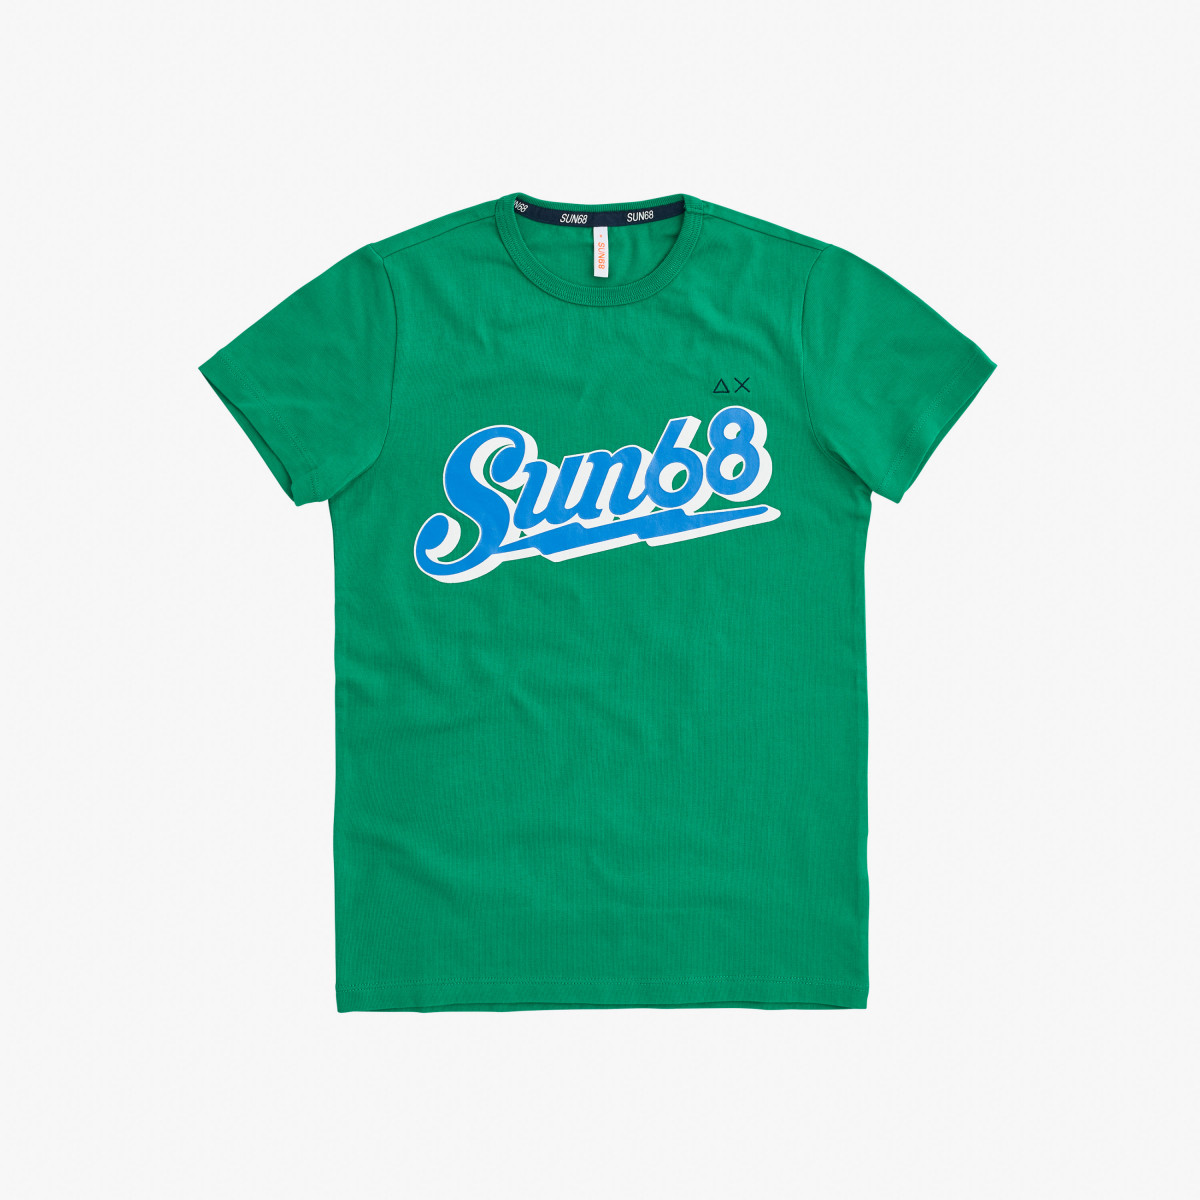 BOY'S T-SHIRT BIG LOGO ON CHEST VERDE PRATO